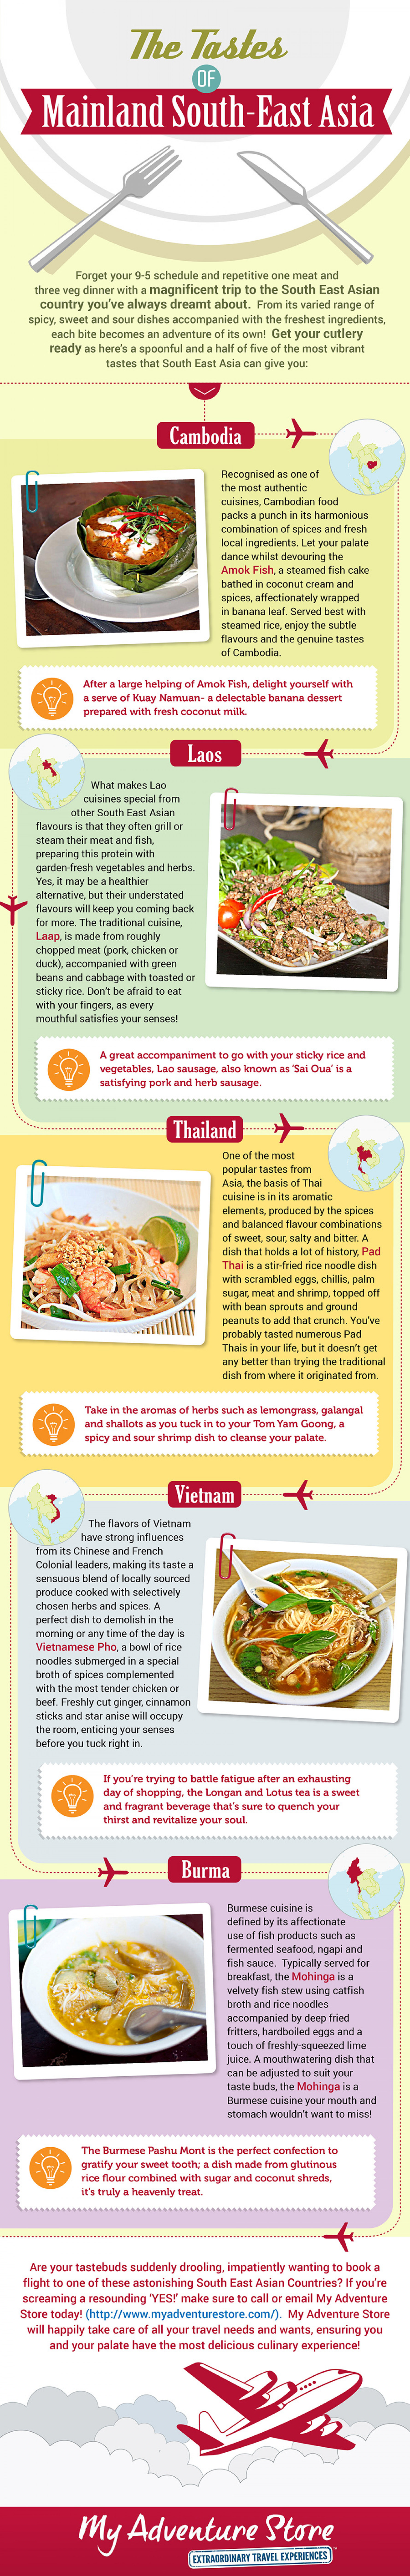 The Tastes of Mainland South East Asia Infographic